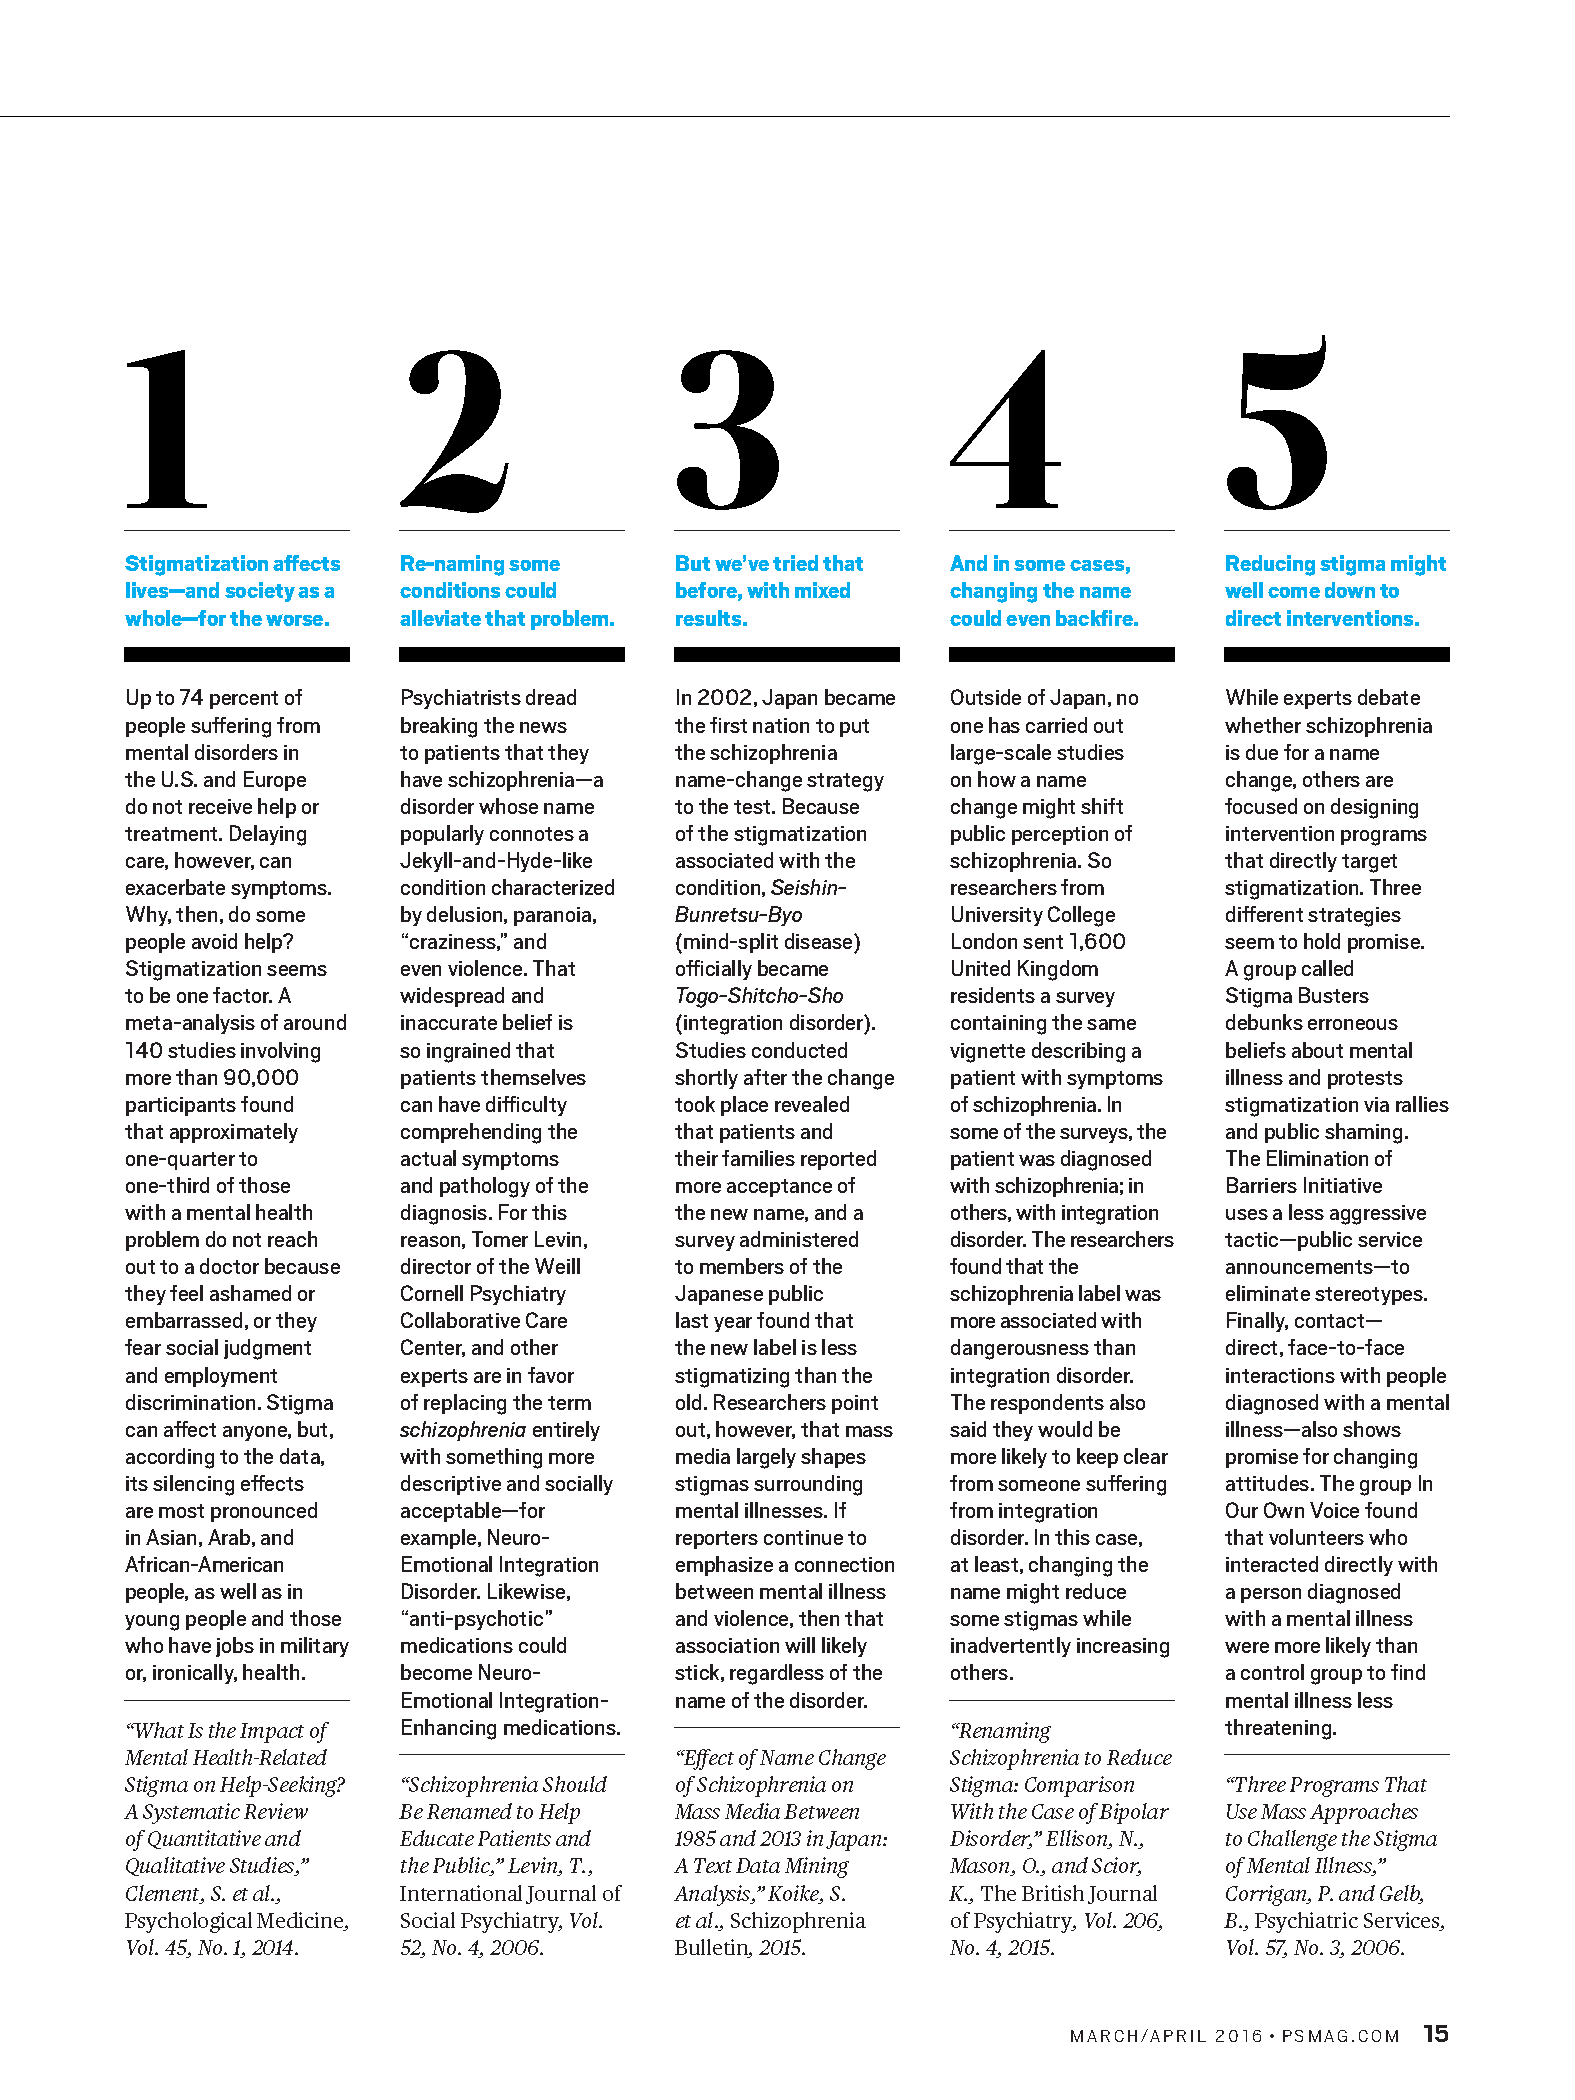 March-April 2016_Page_17.png